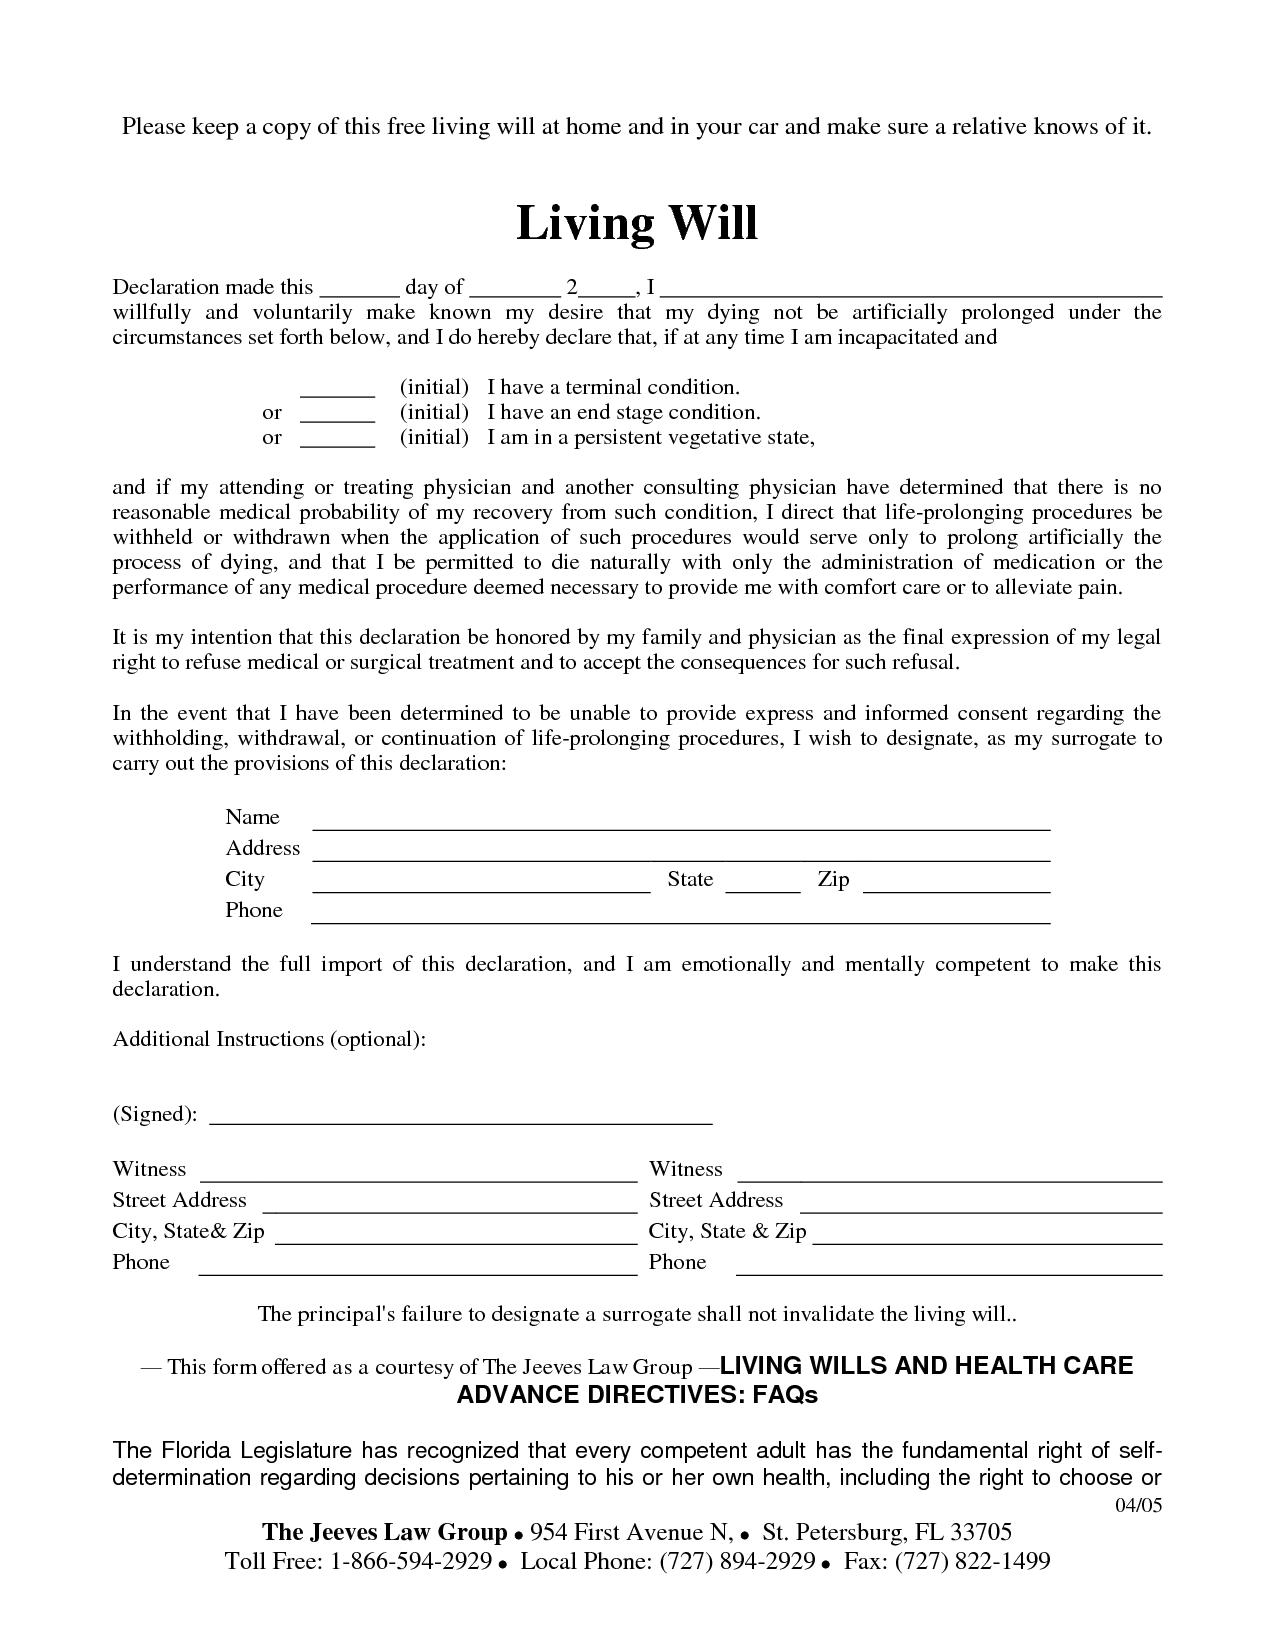 Free Copy Of Living Willrichard_Cataman - Living Will Sample - Free Printable Living Will